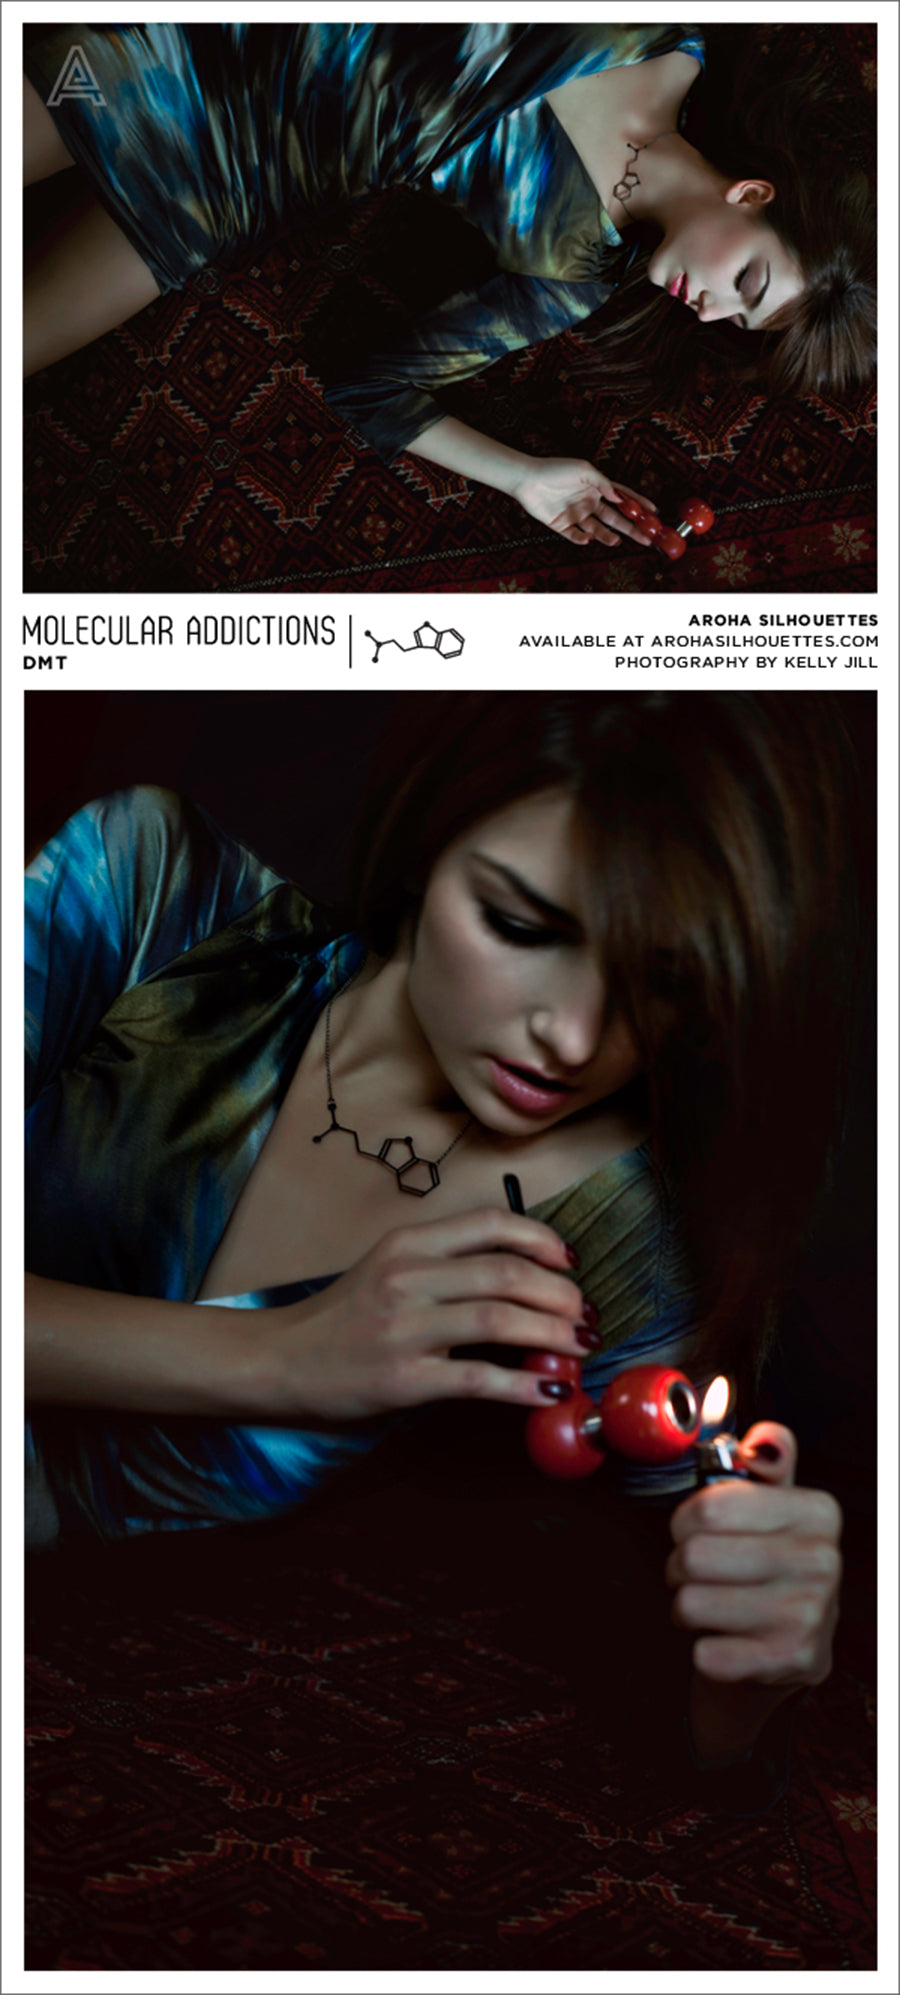 Molecular Addictions Collection by Aroha Silhouettes - DMT Molecule Necklace